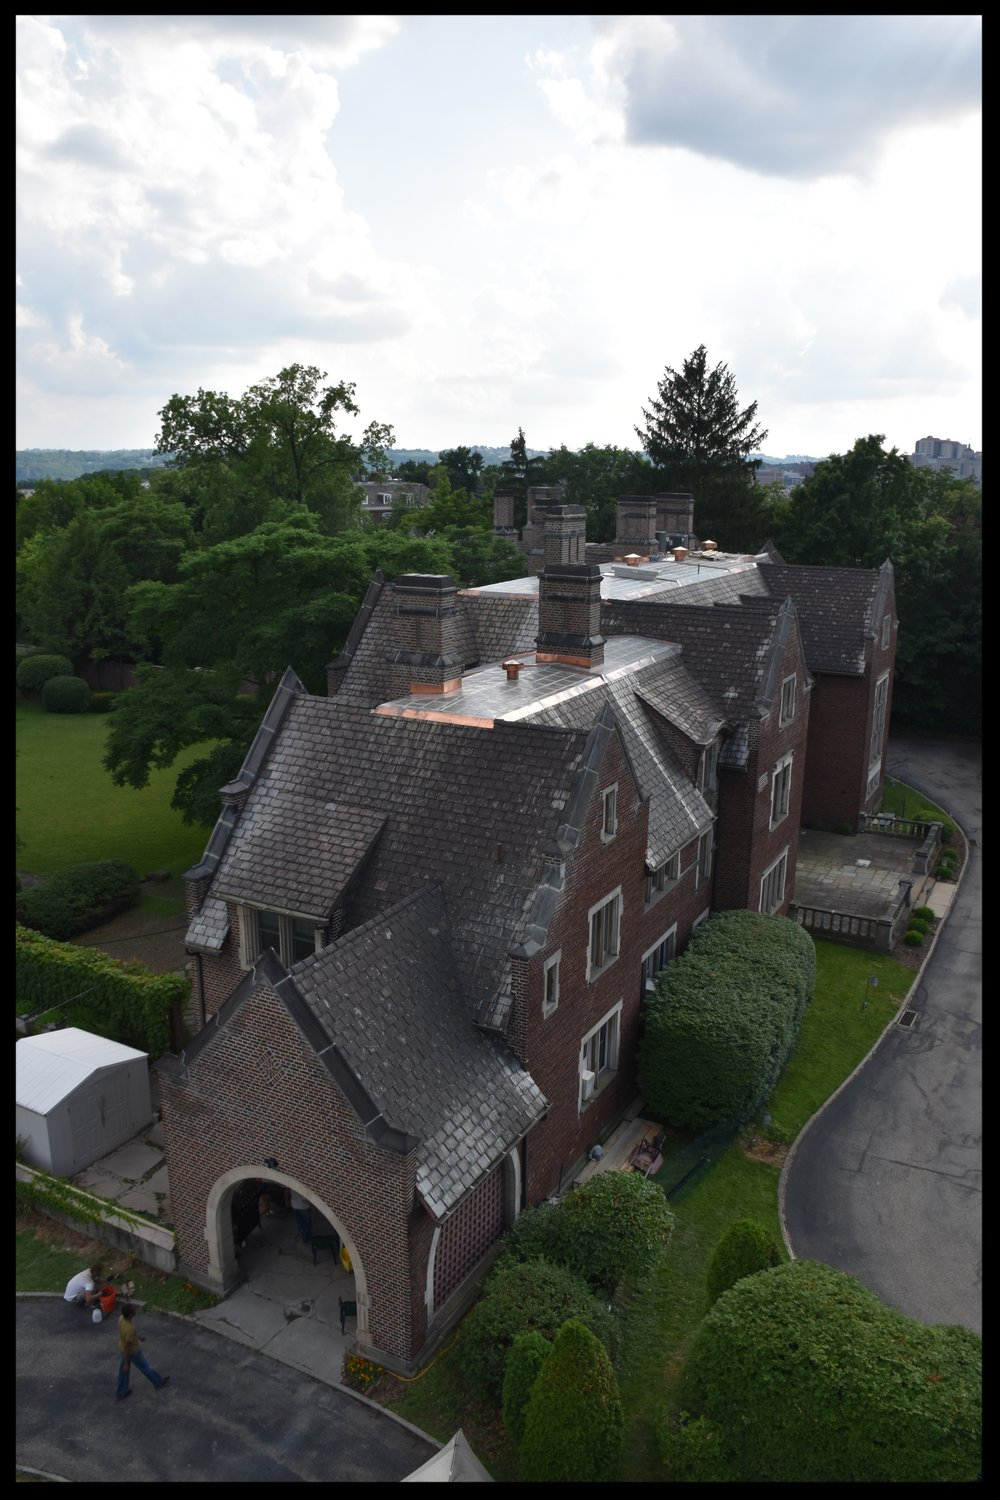 Complete restoration of Heinz Mansion (now Warwick Foundation) located in Pittsburgh, PA. (Completed July 2016).